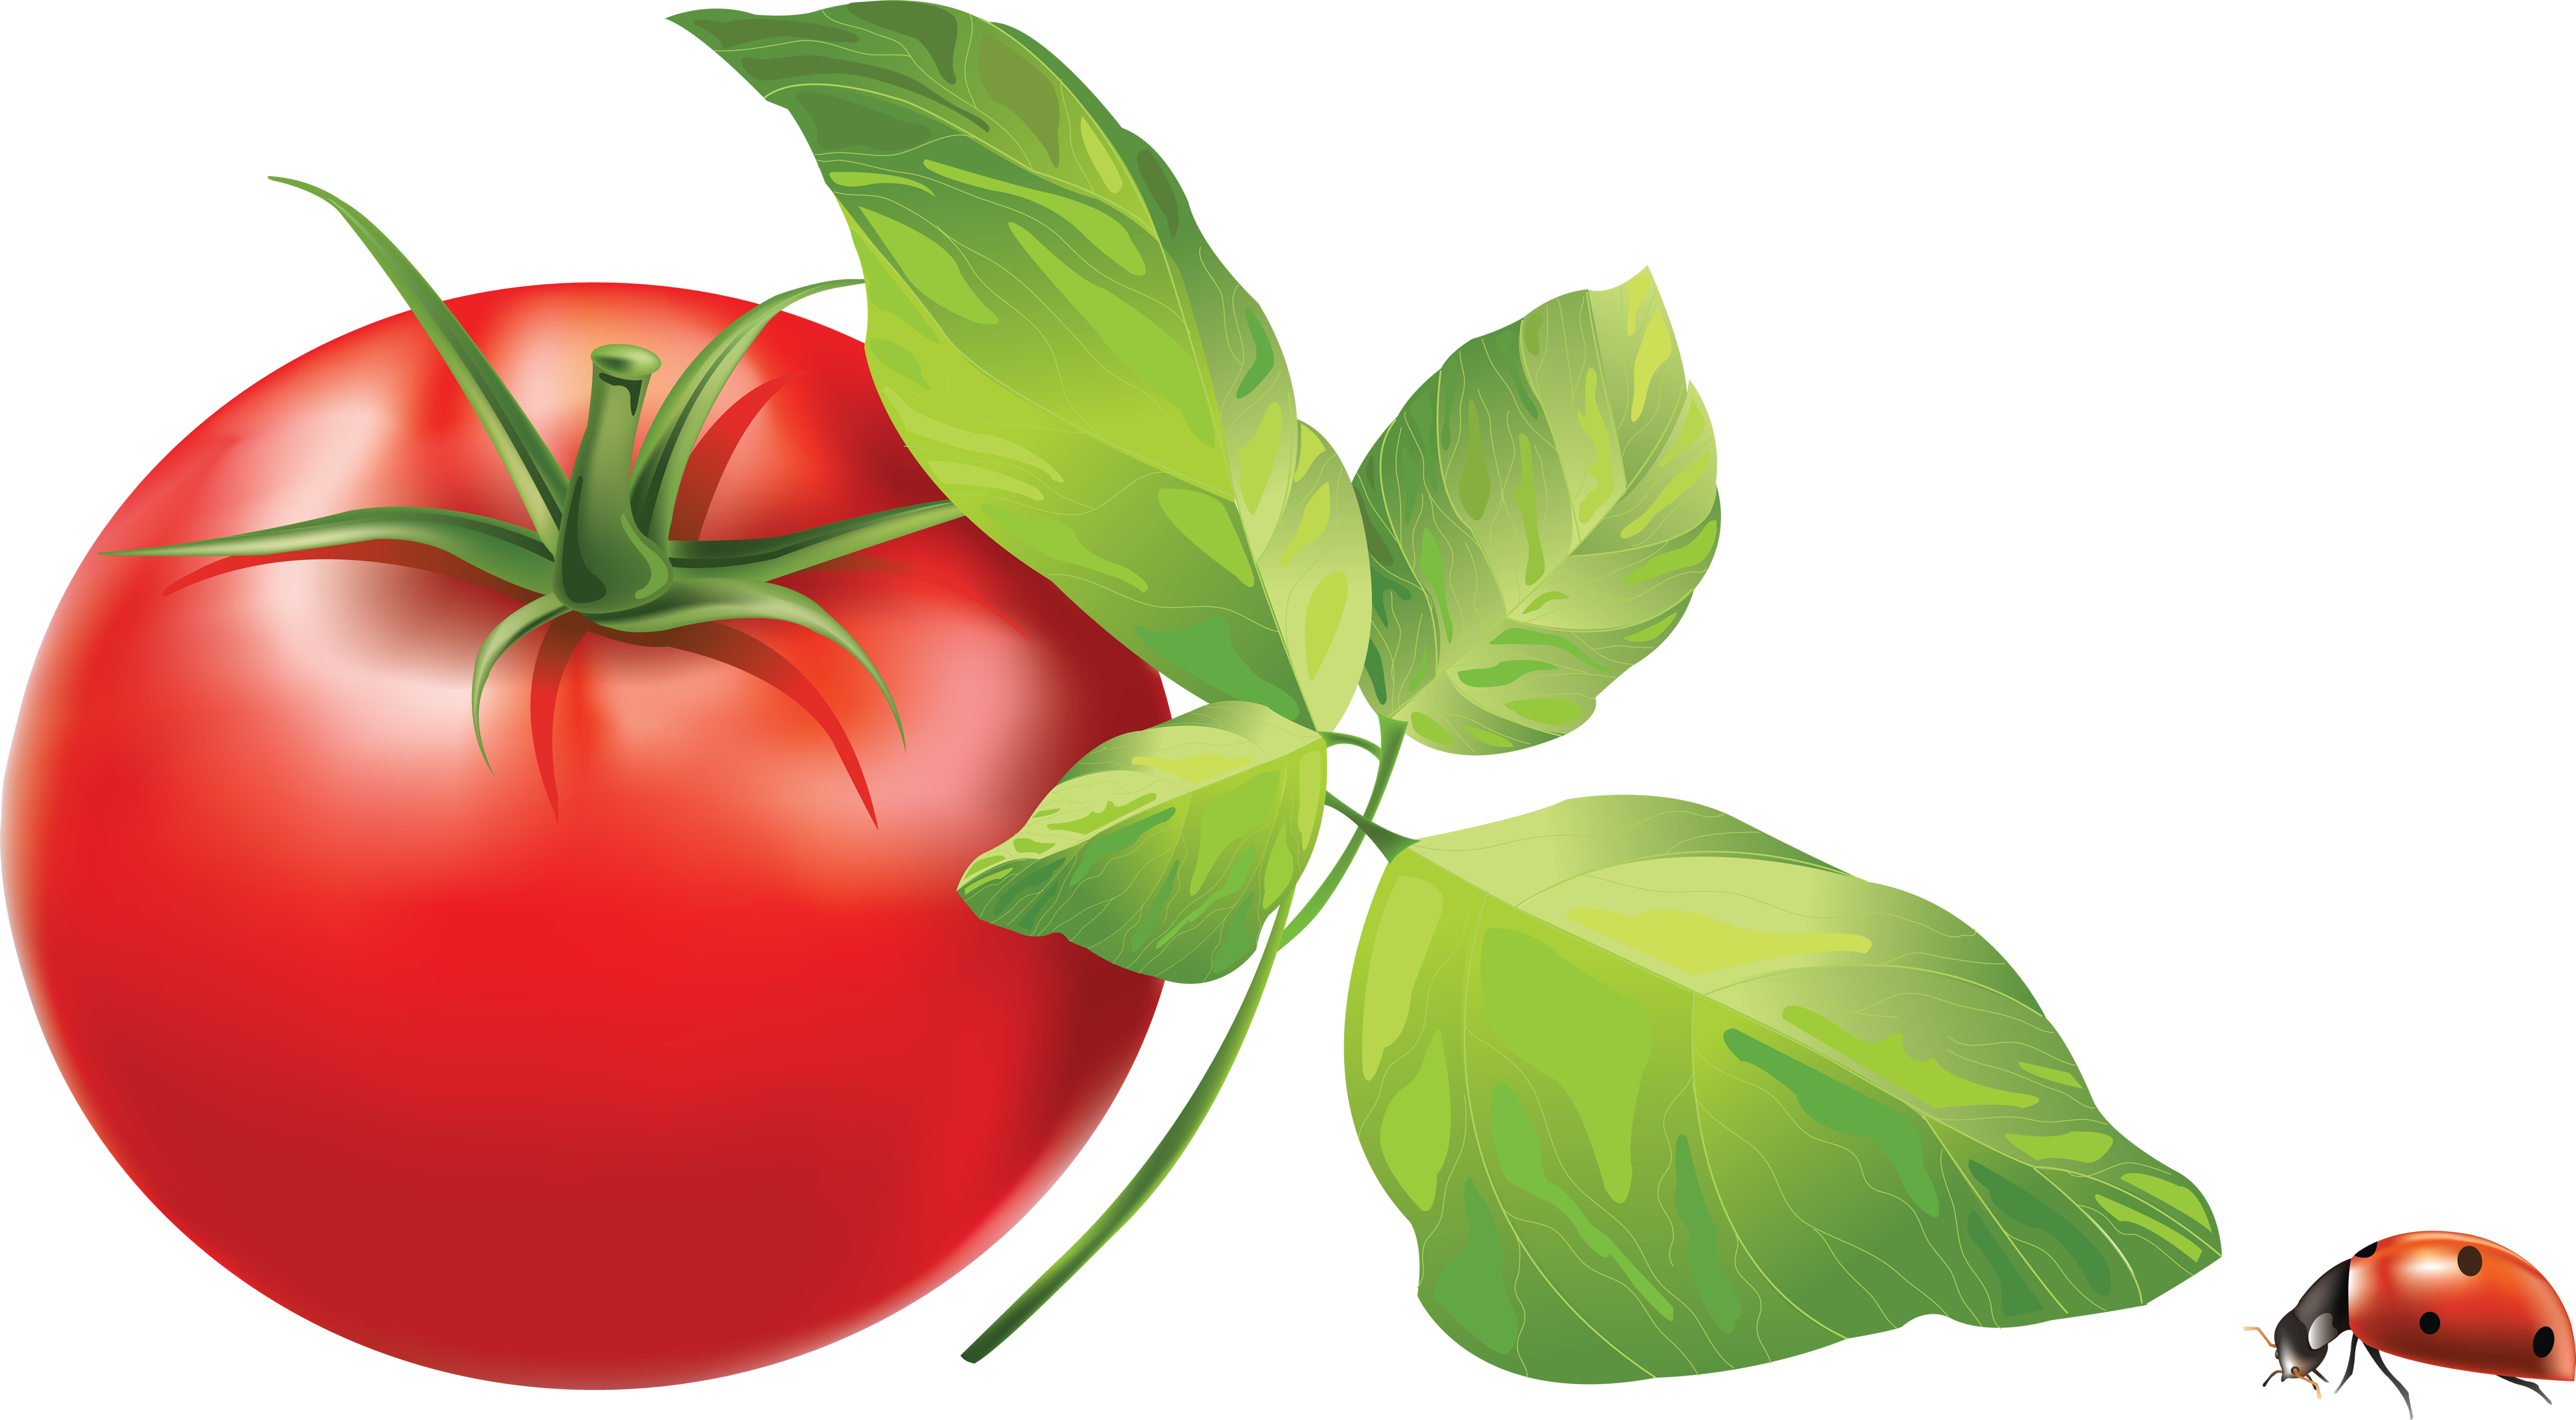 Tomato Png Image Tomato Plants Support Hanging Tomato Plants Pruning Tomato Plants